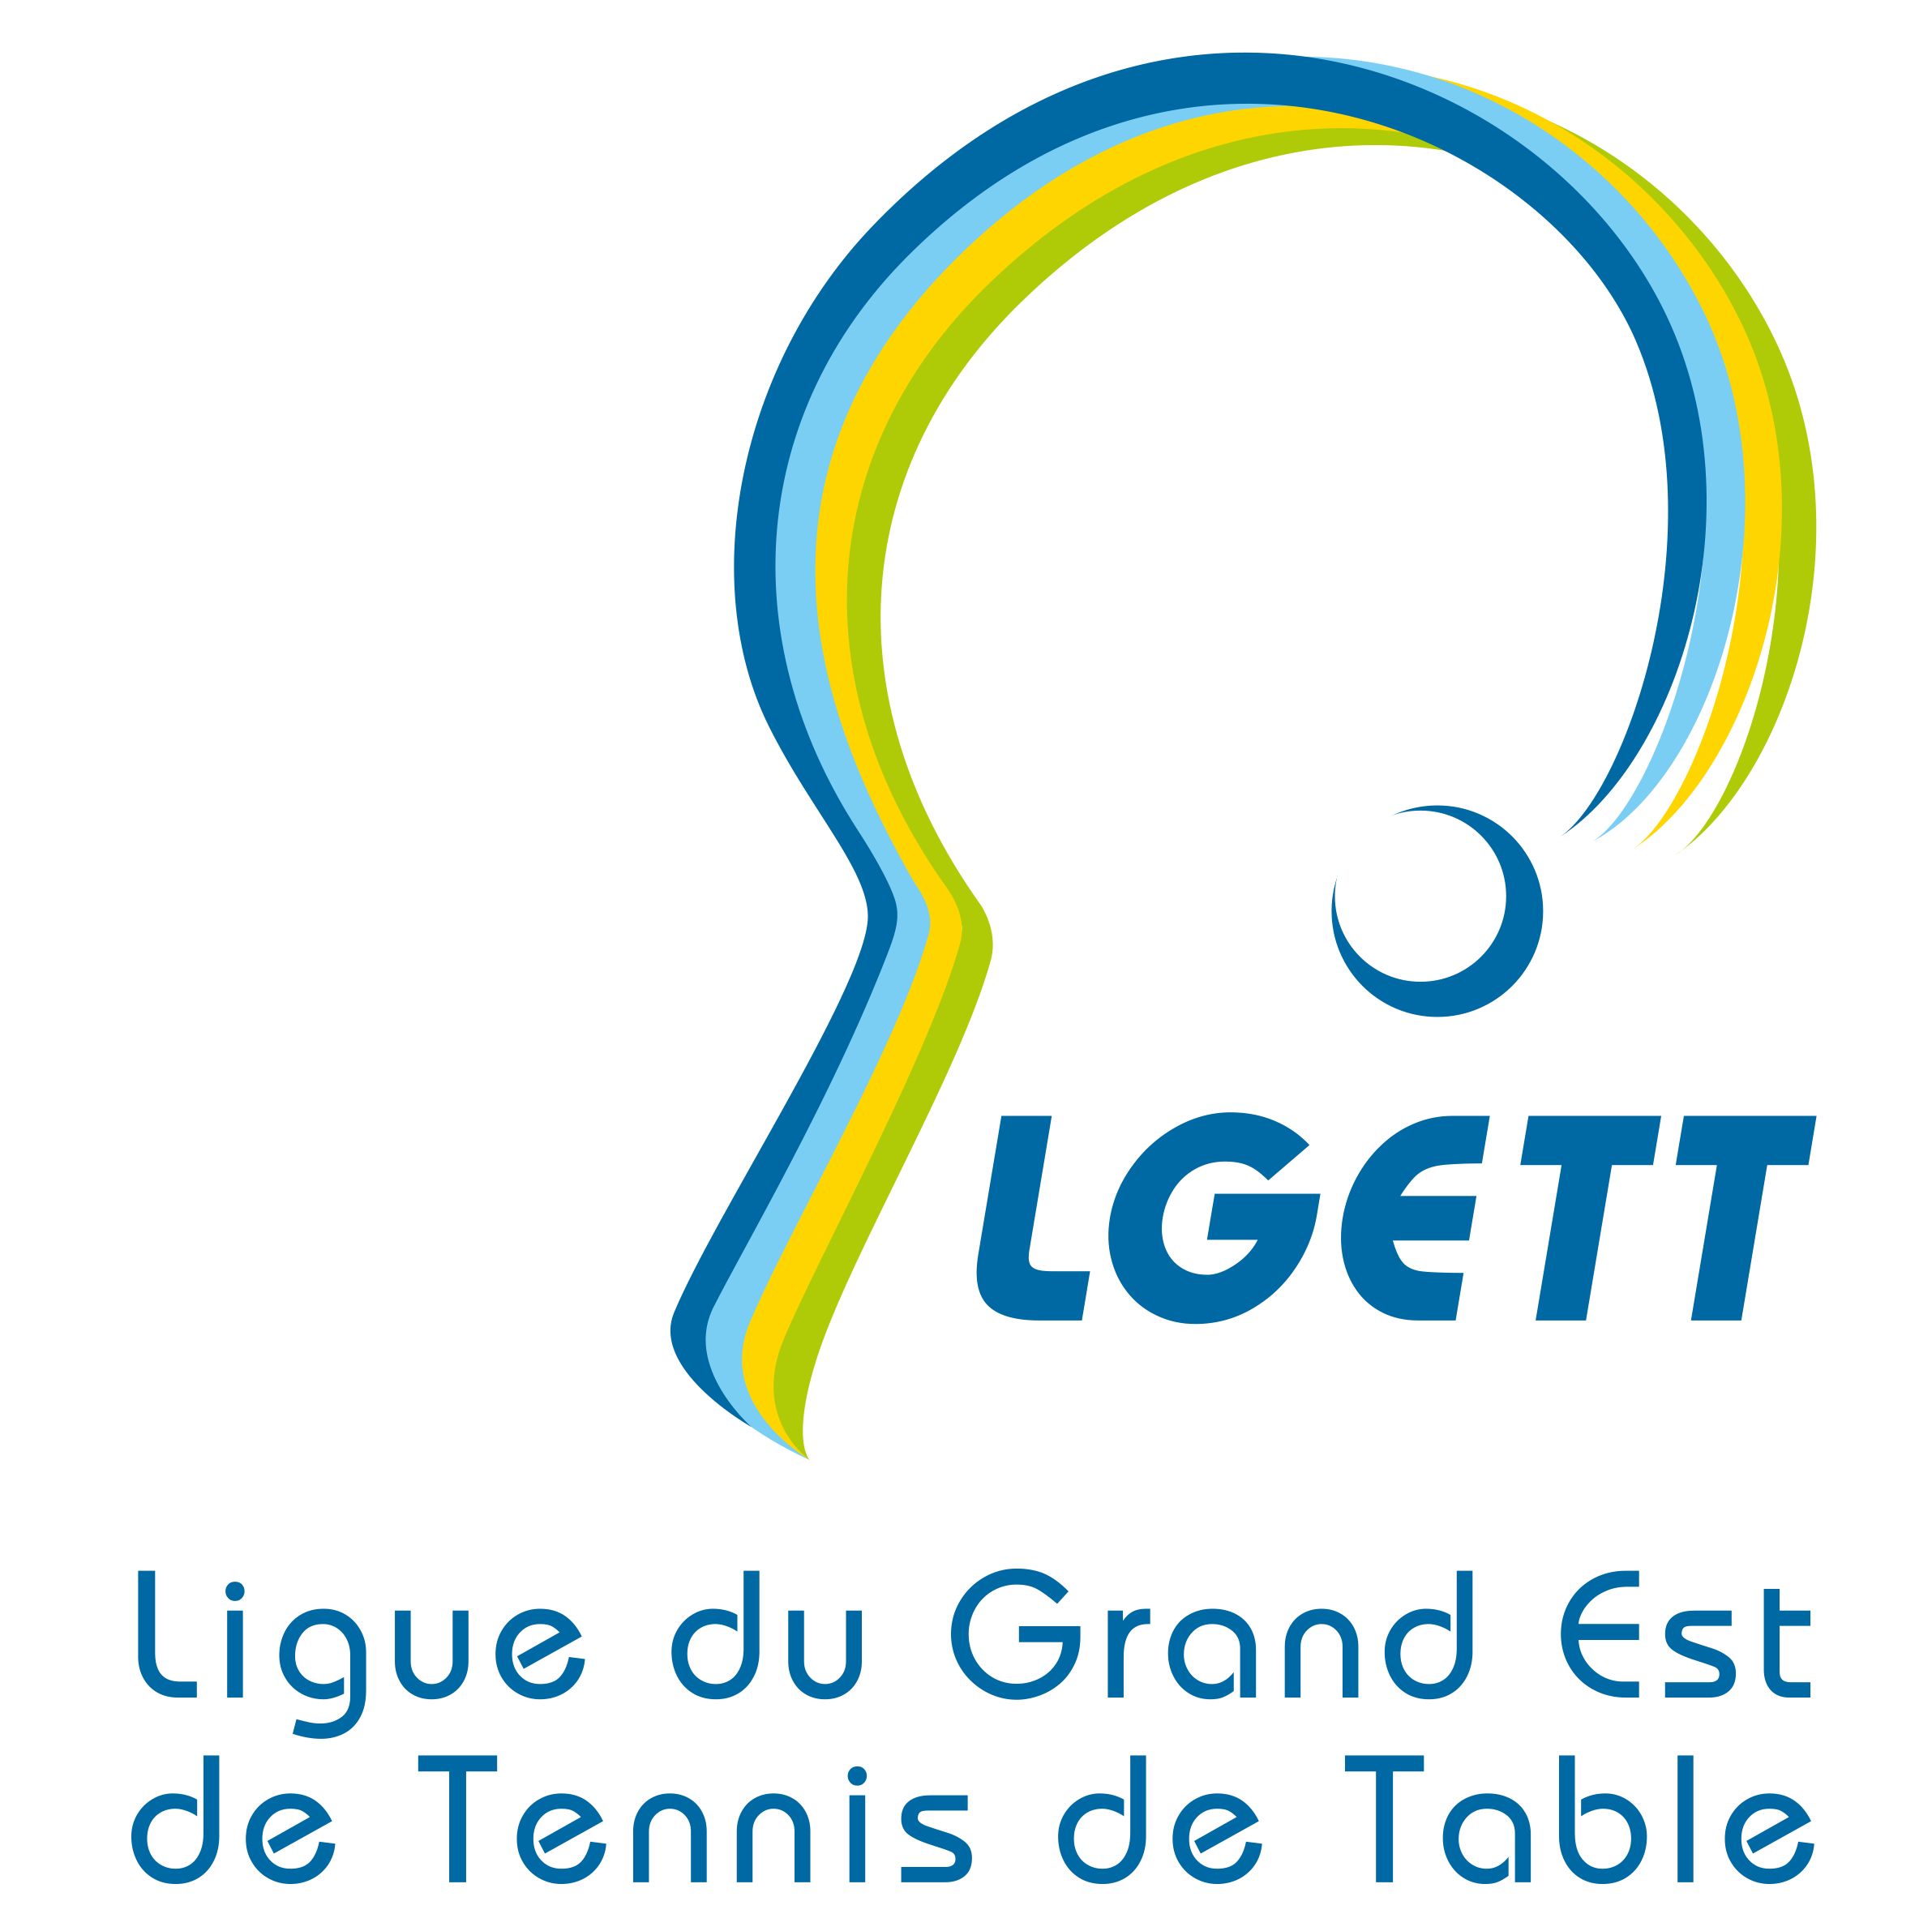 Ligue du Grand Est de Tennis de Table